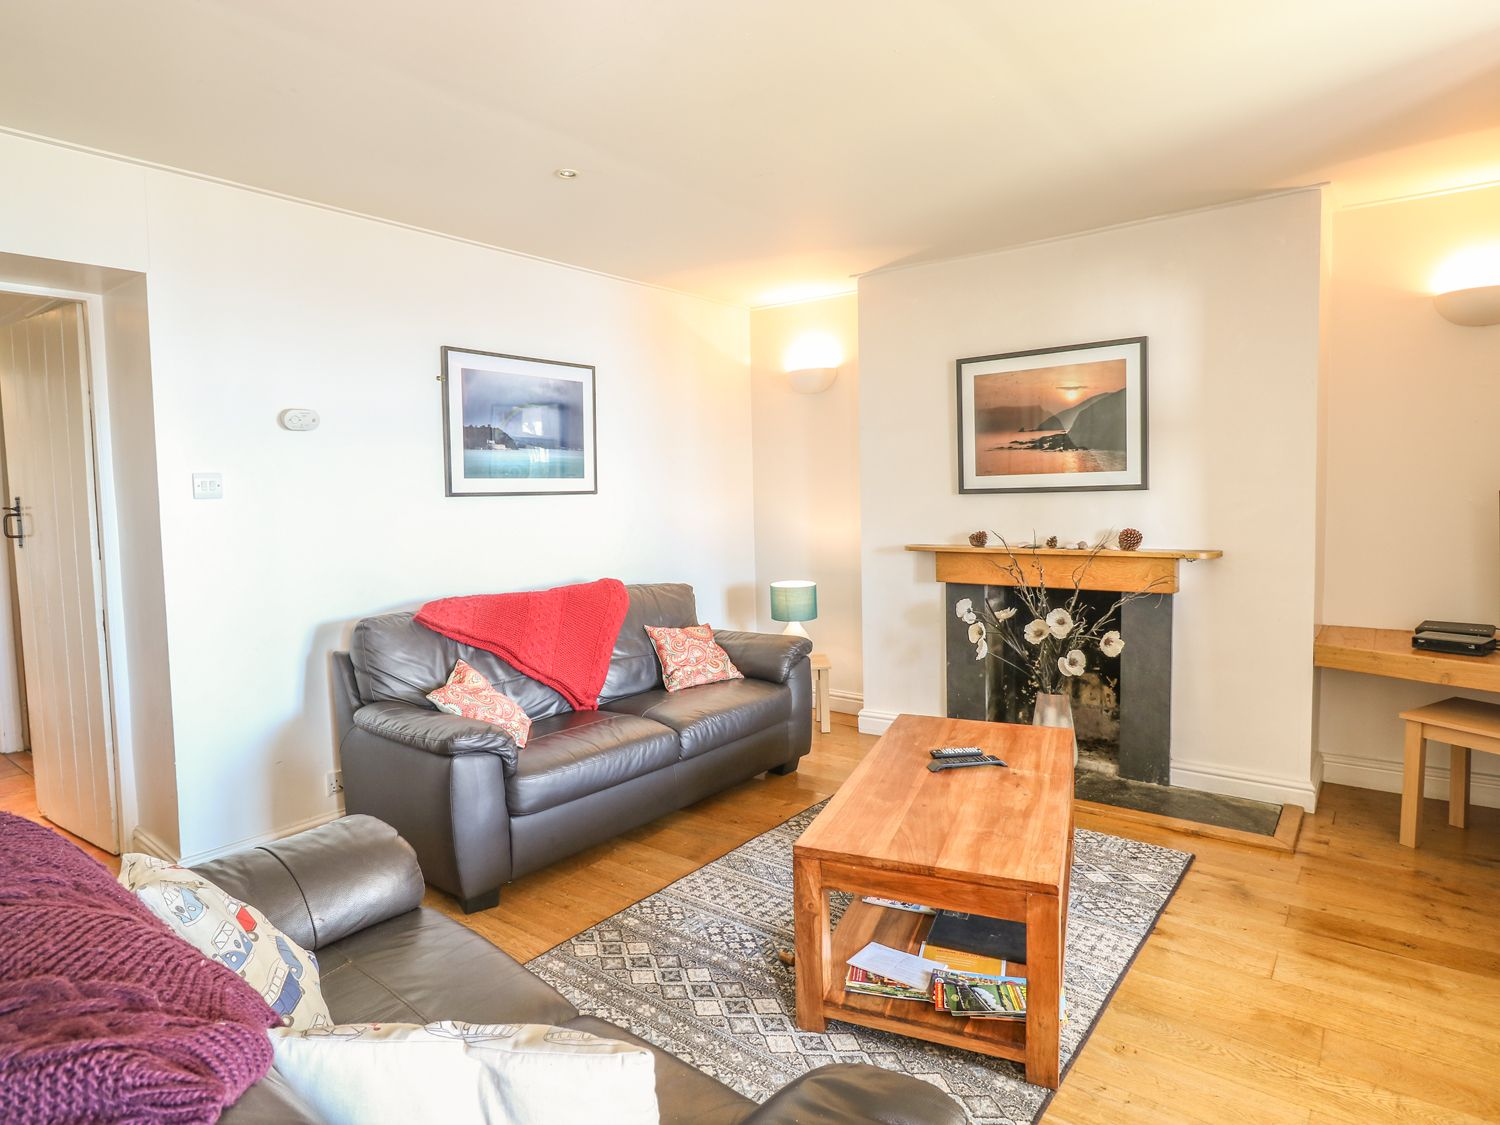 Grenville in Whitsand Bay - sleeps 6 people